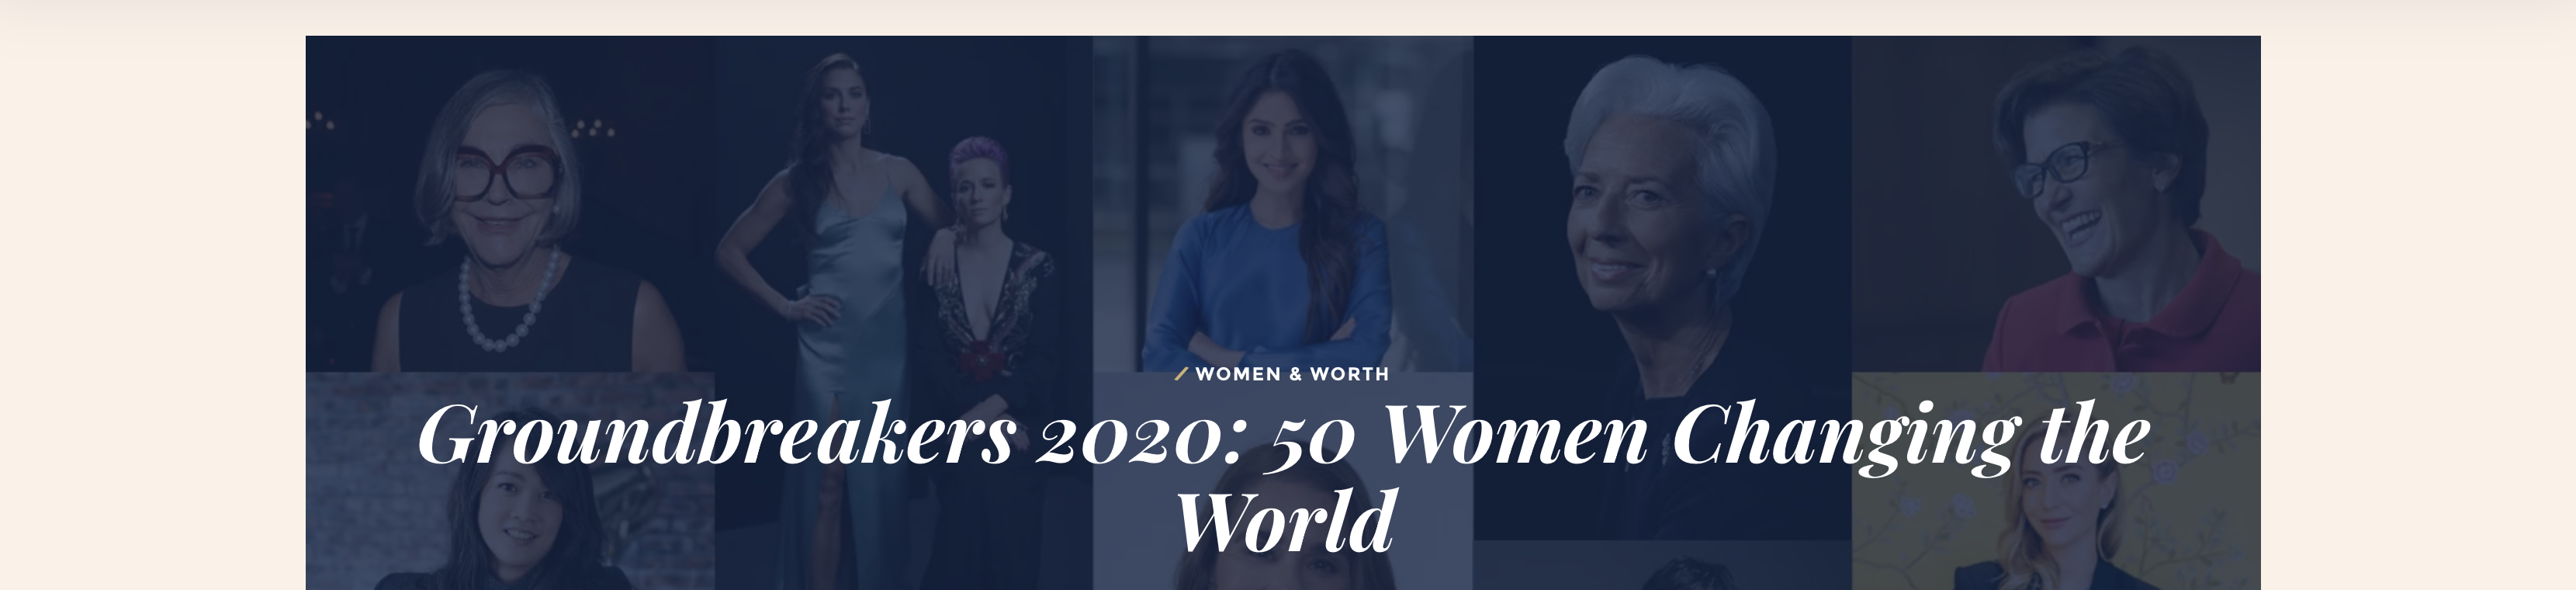 """Image with a mosaic of women's faces and the words """"Groundbreakers 2020"""""""